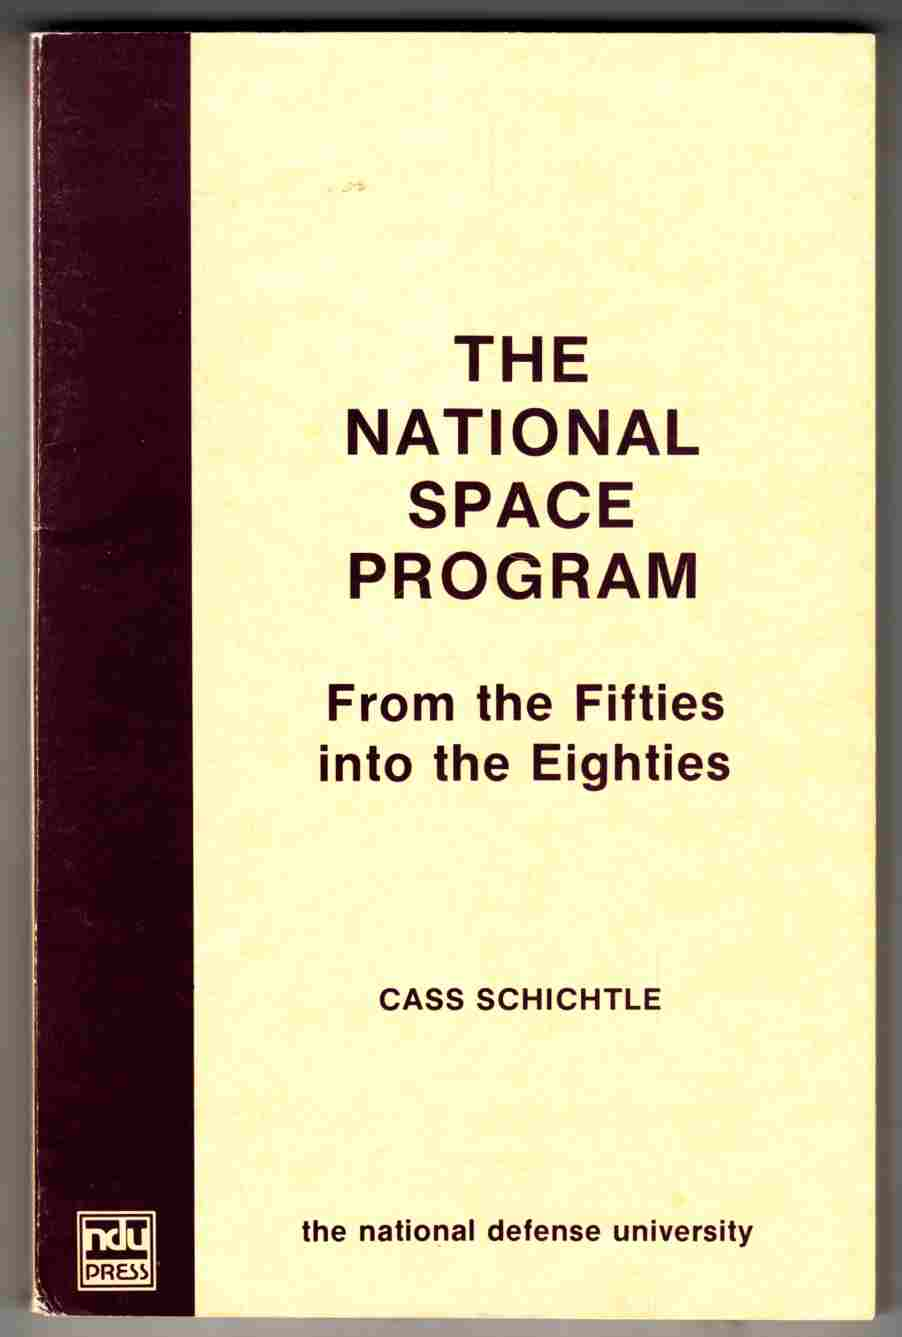 Image for The National Space Program From the Eighties Into the Fifties